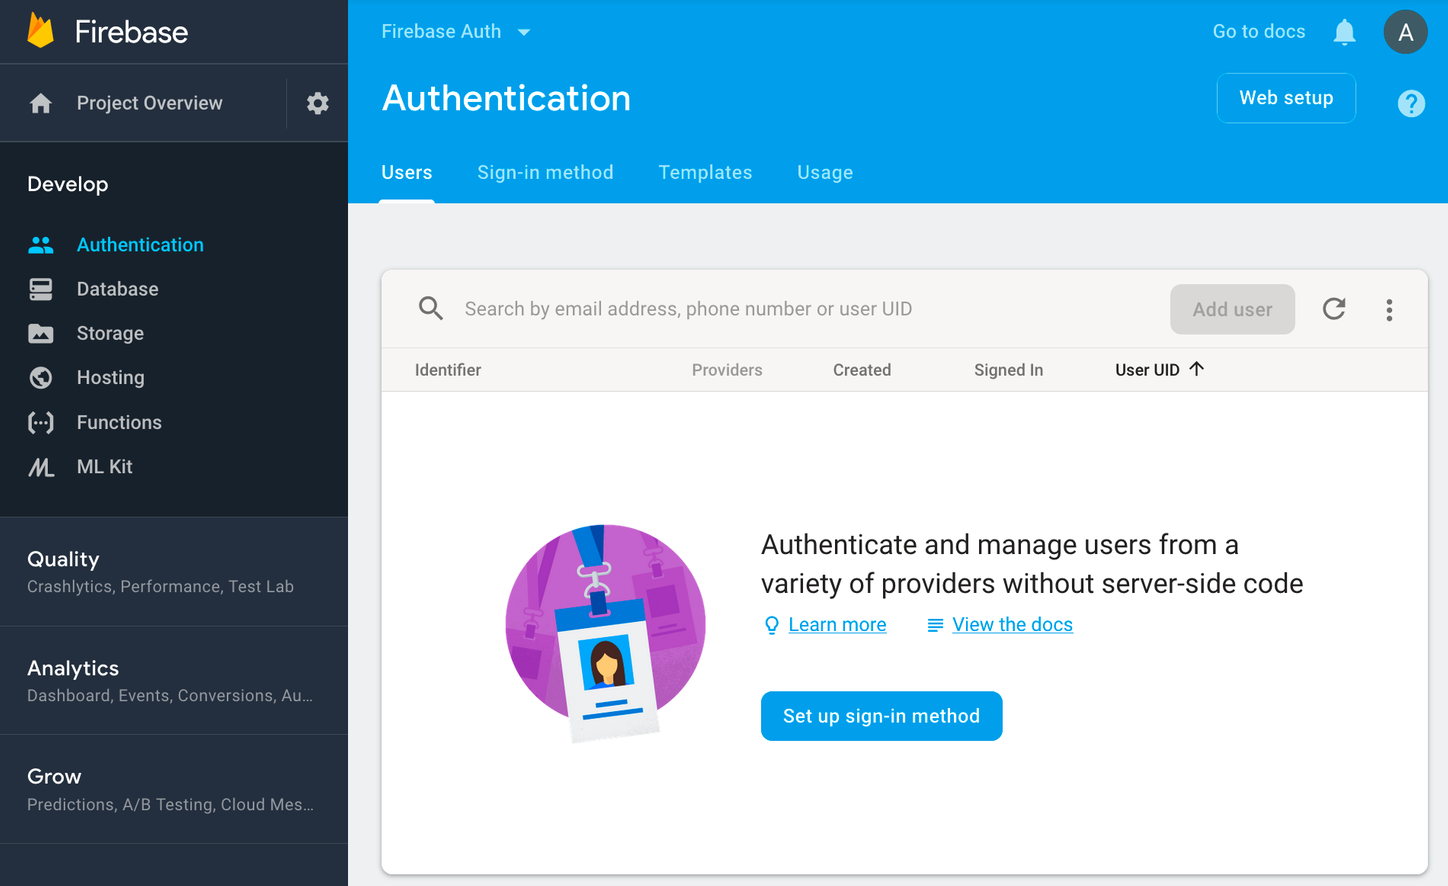 Integrating Google Firebase Auth